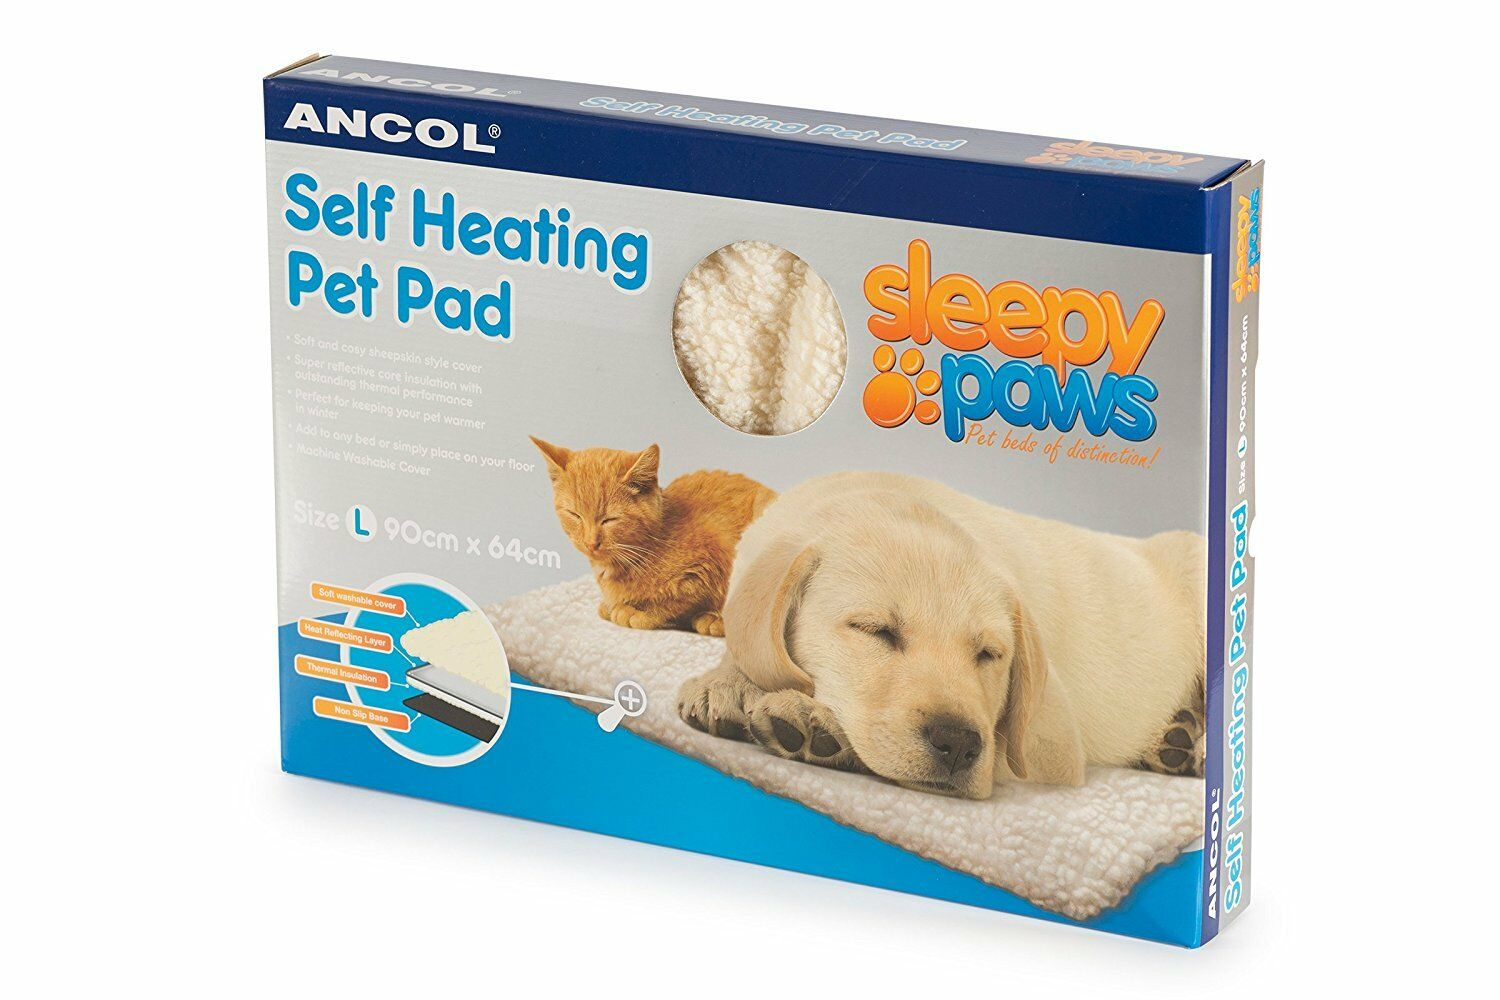 Ancol - Self Heating Pet Pad Cat Dog Bed - Large